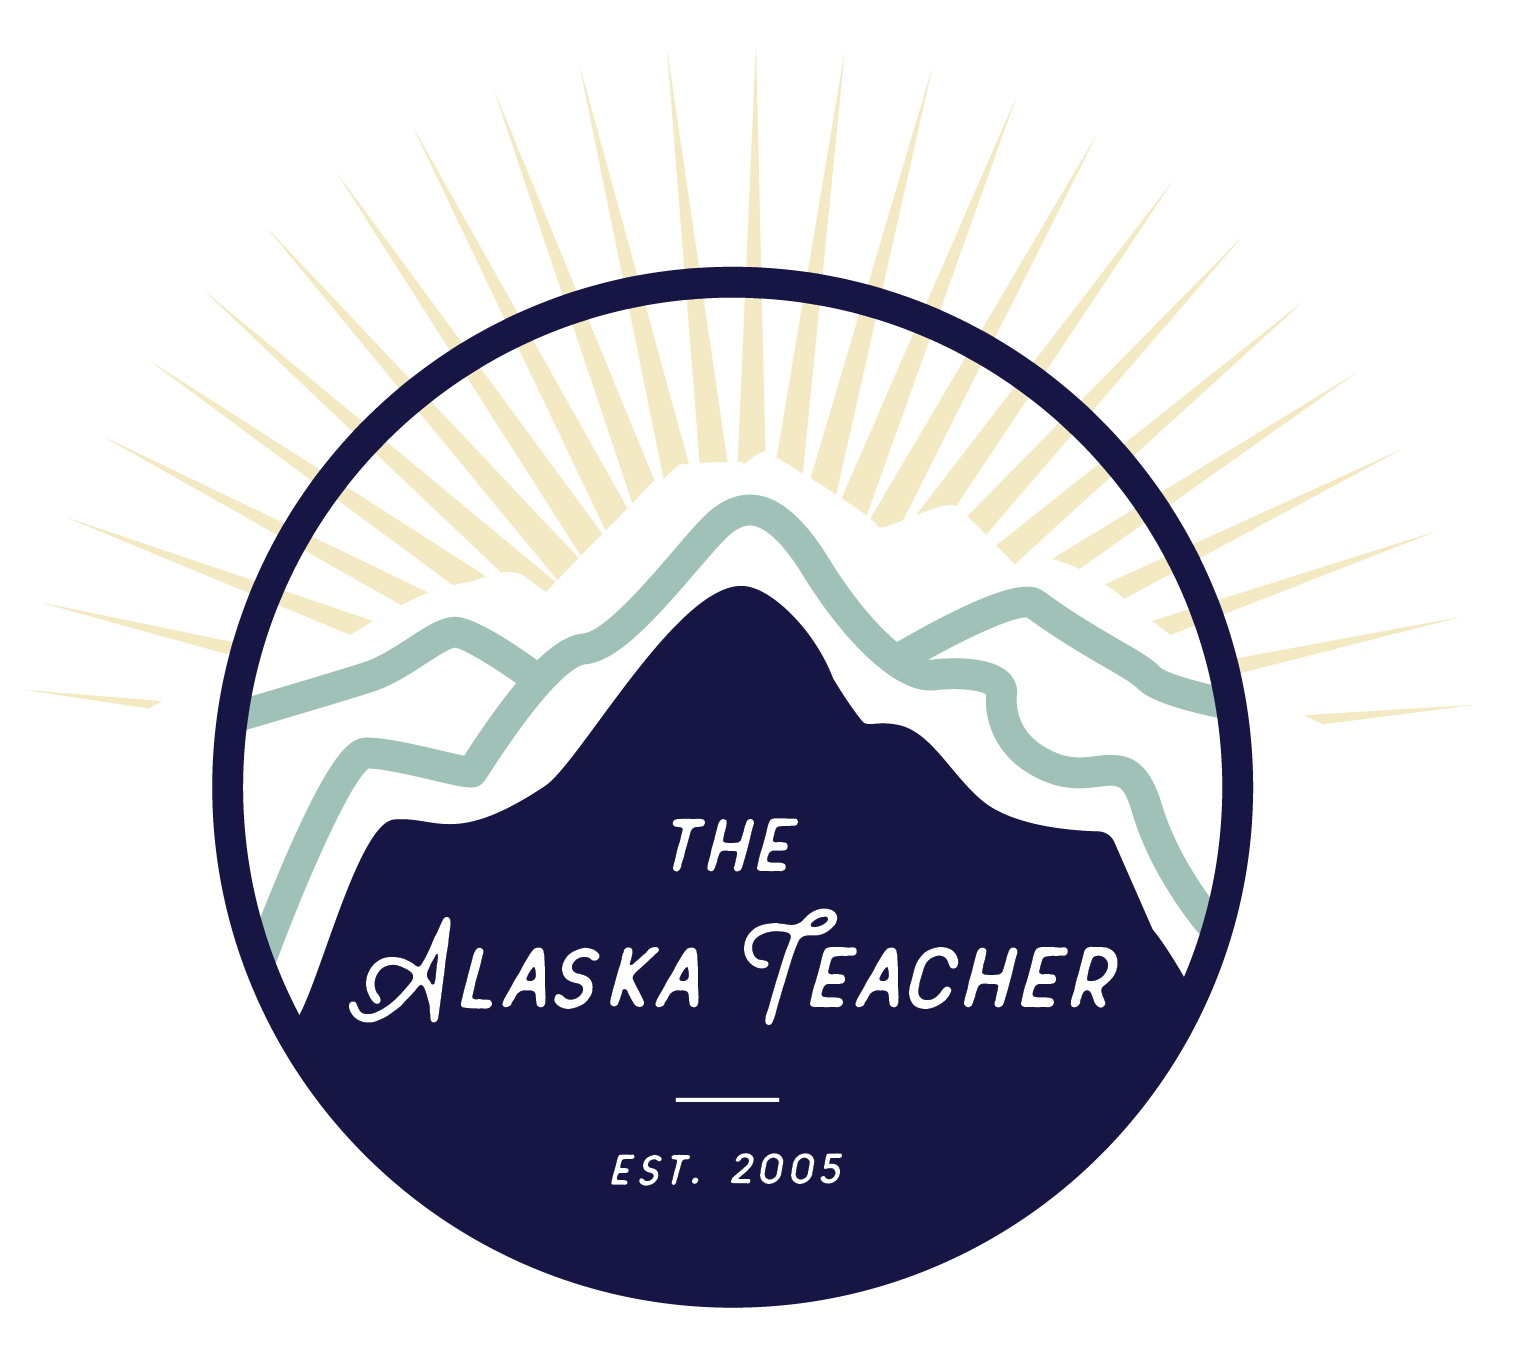 The Alaska Teacher